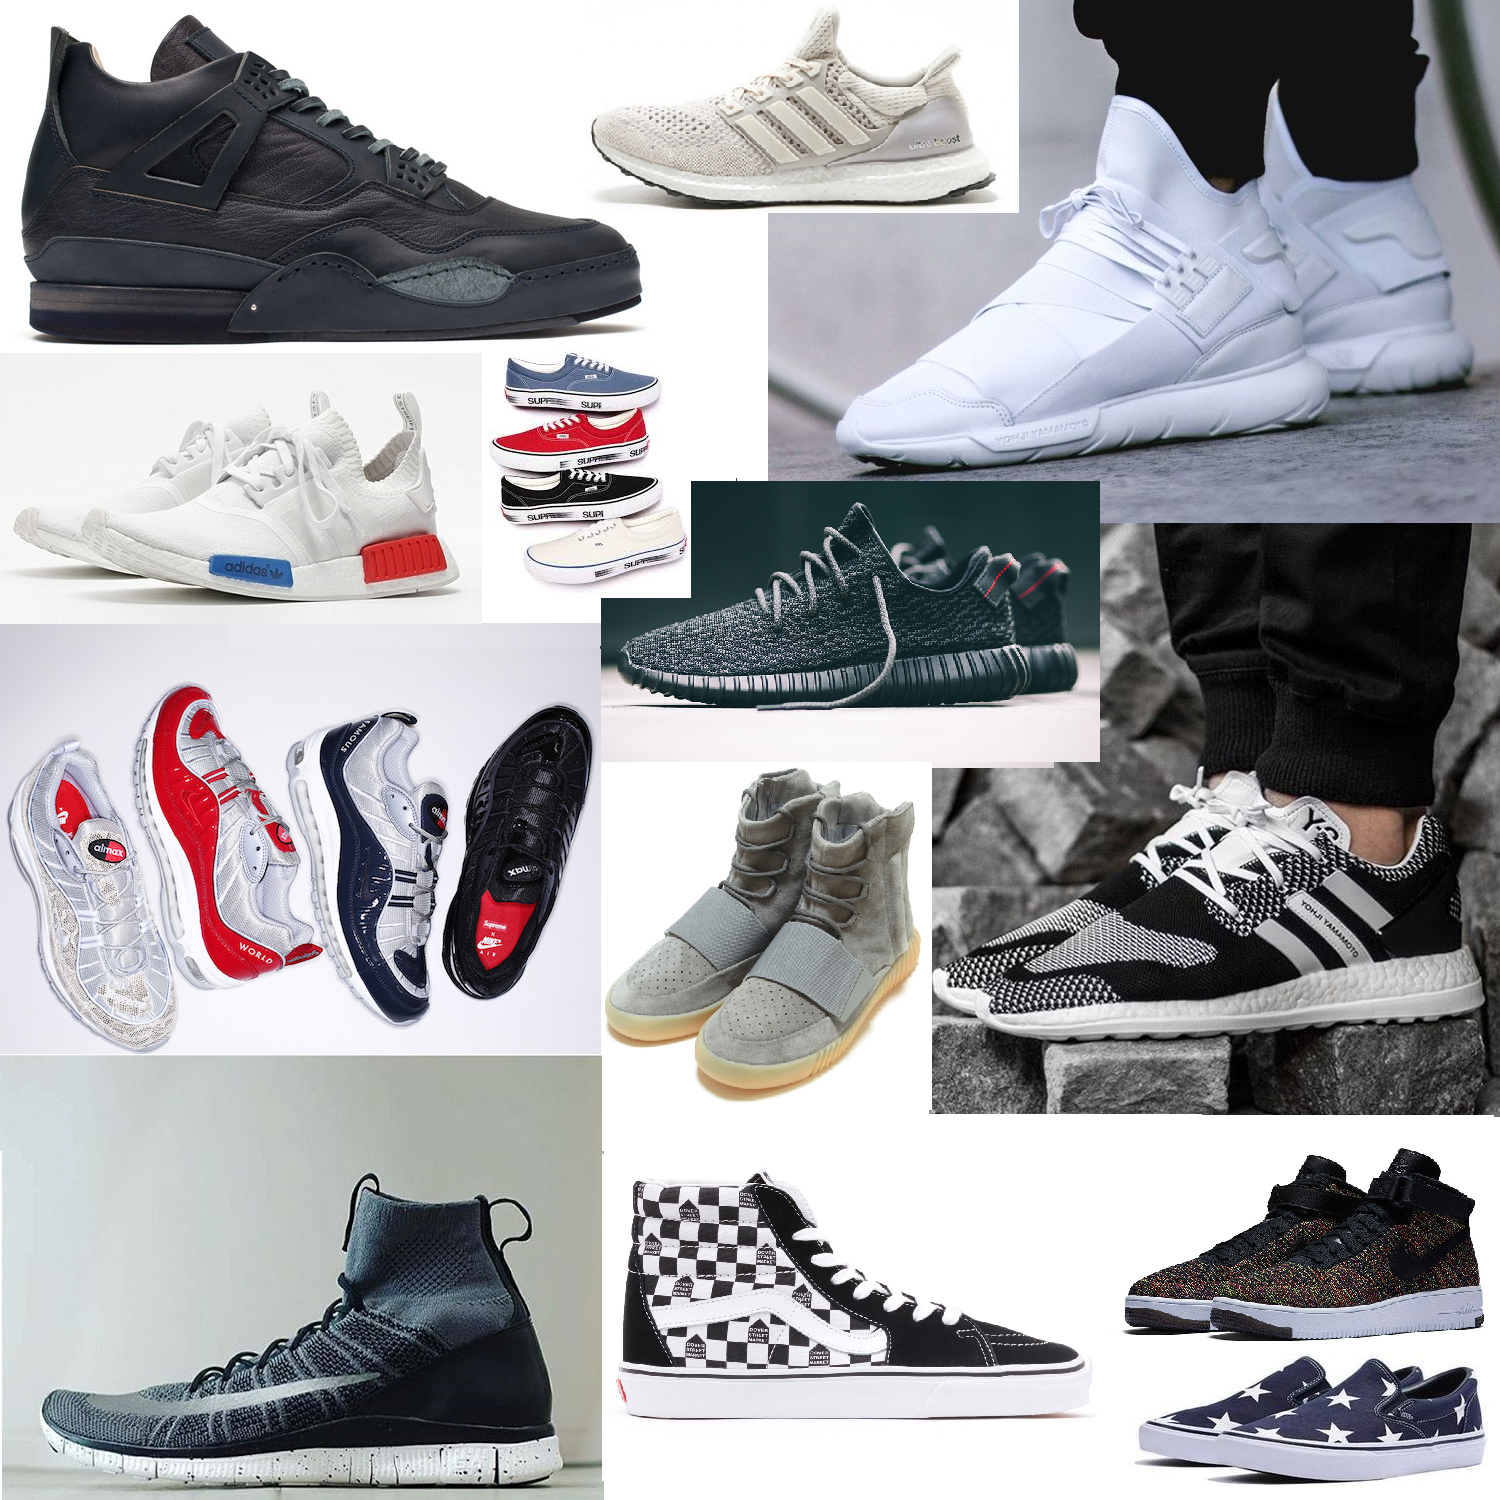 2016-first-half-release-sneaker-top15